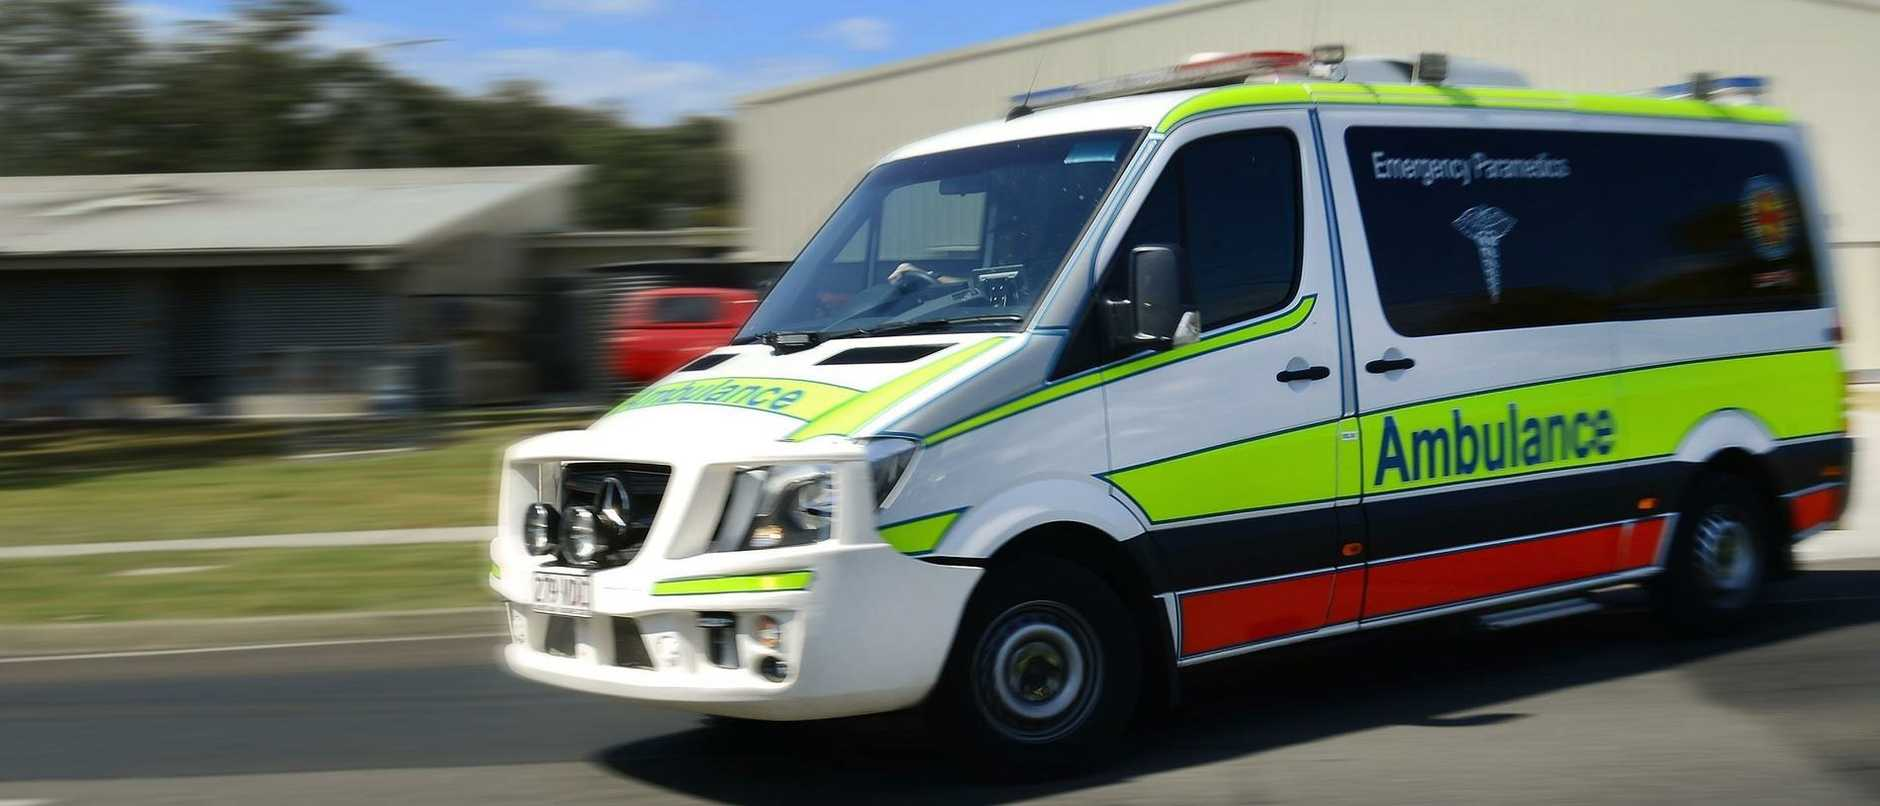 A person has been injured after a large drum fell on them at work.